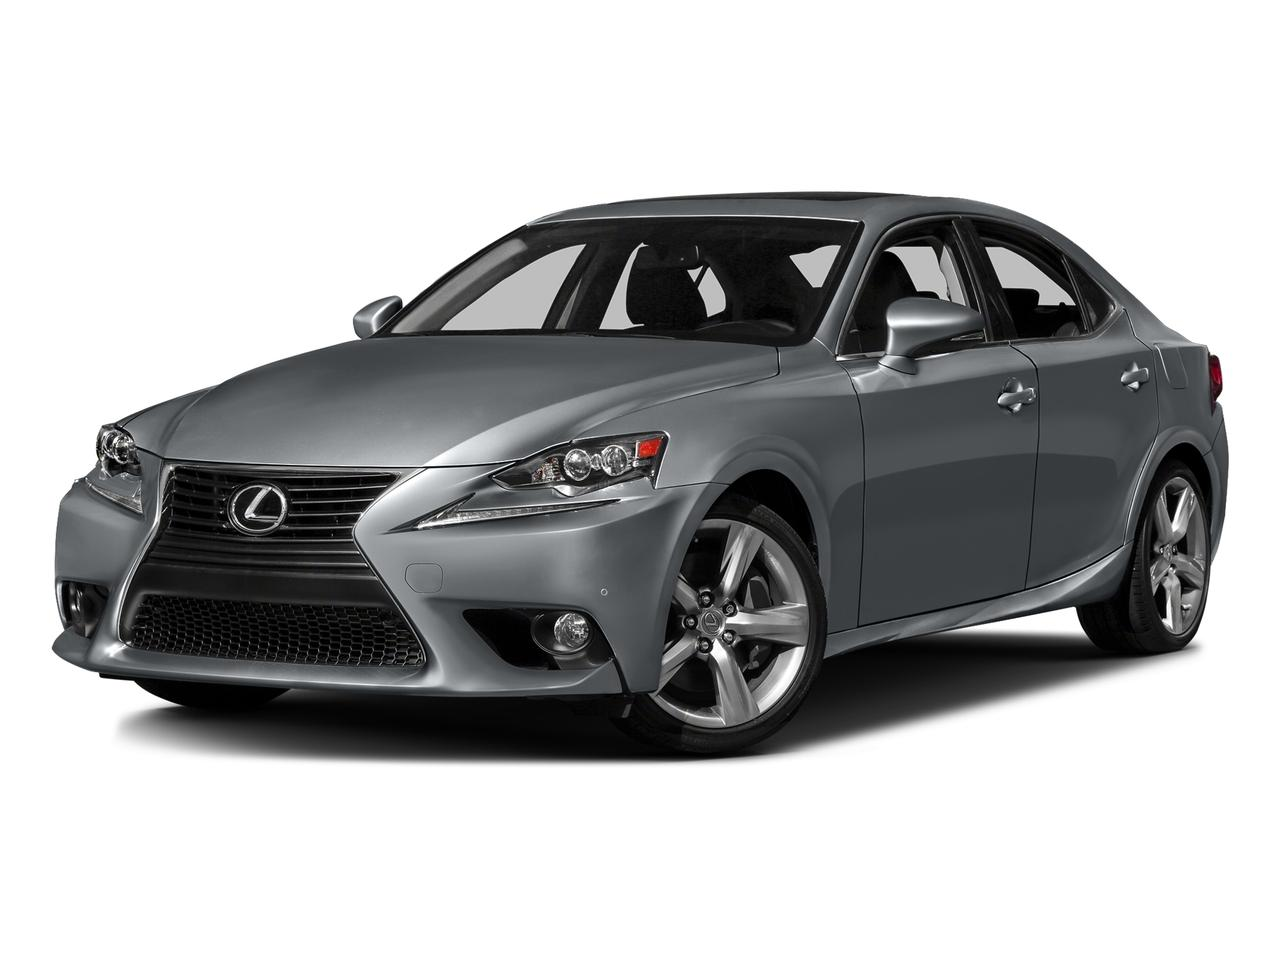 2016 Lexus IS 350 Vehicle Photo in San Antonio, TX 78209